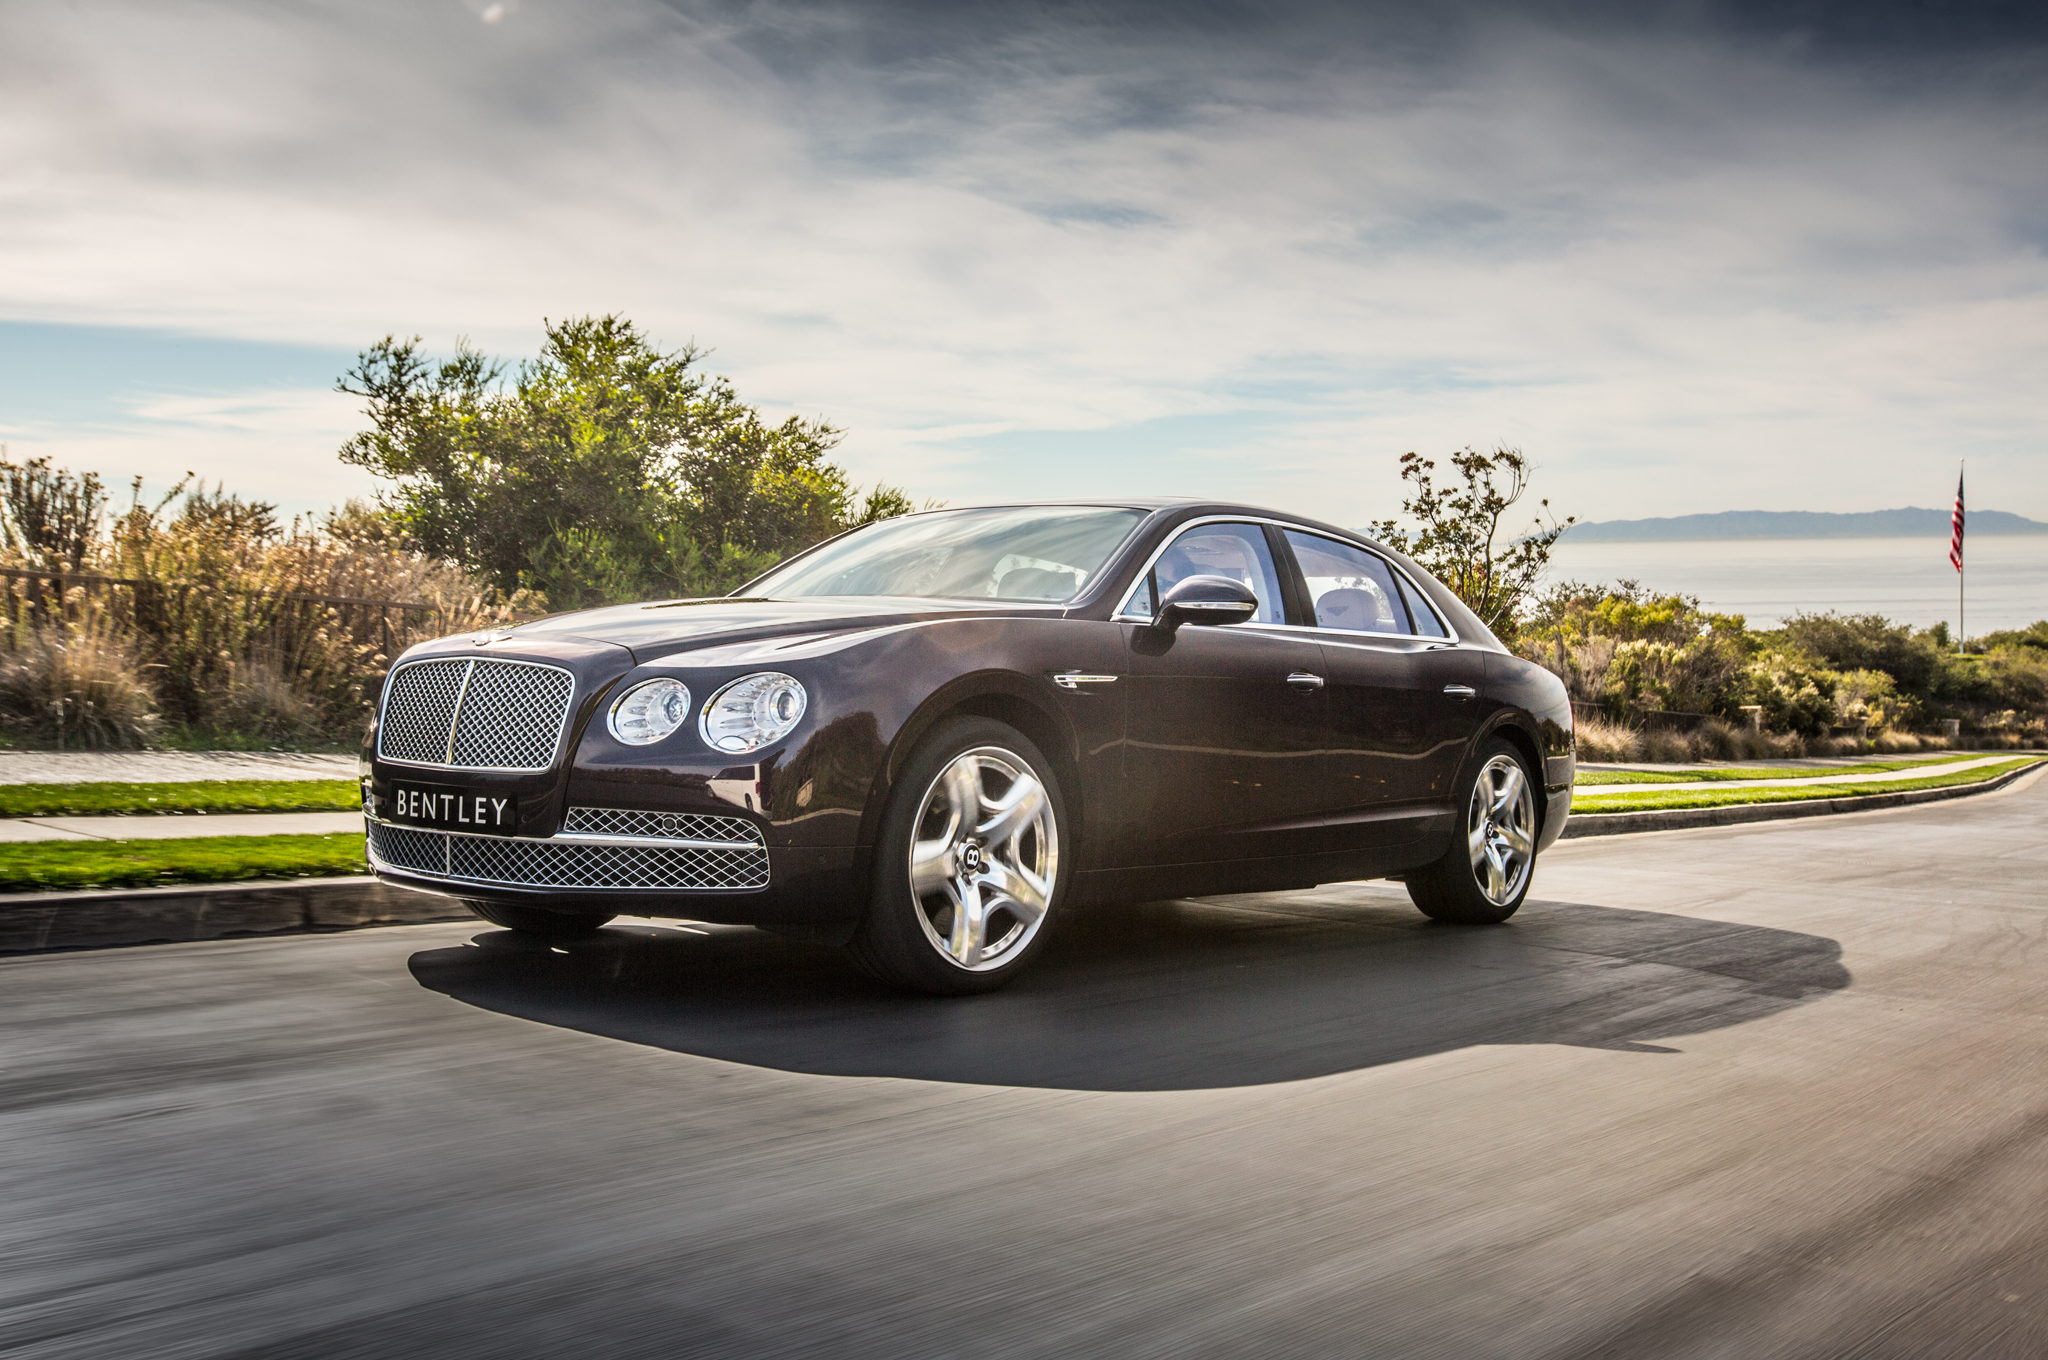 flying Spur – Car Wallpapers in HD For The Iphone ,Android,Desktop,10 Wallpaper